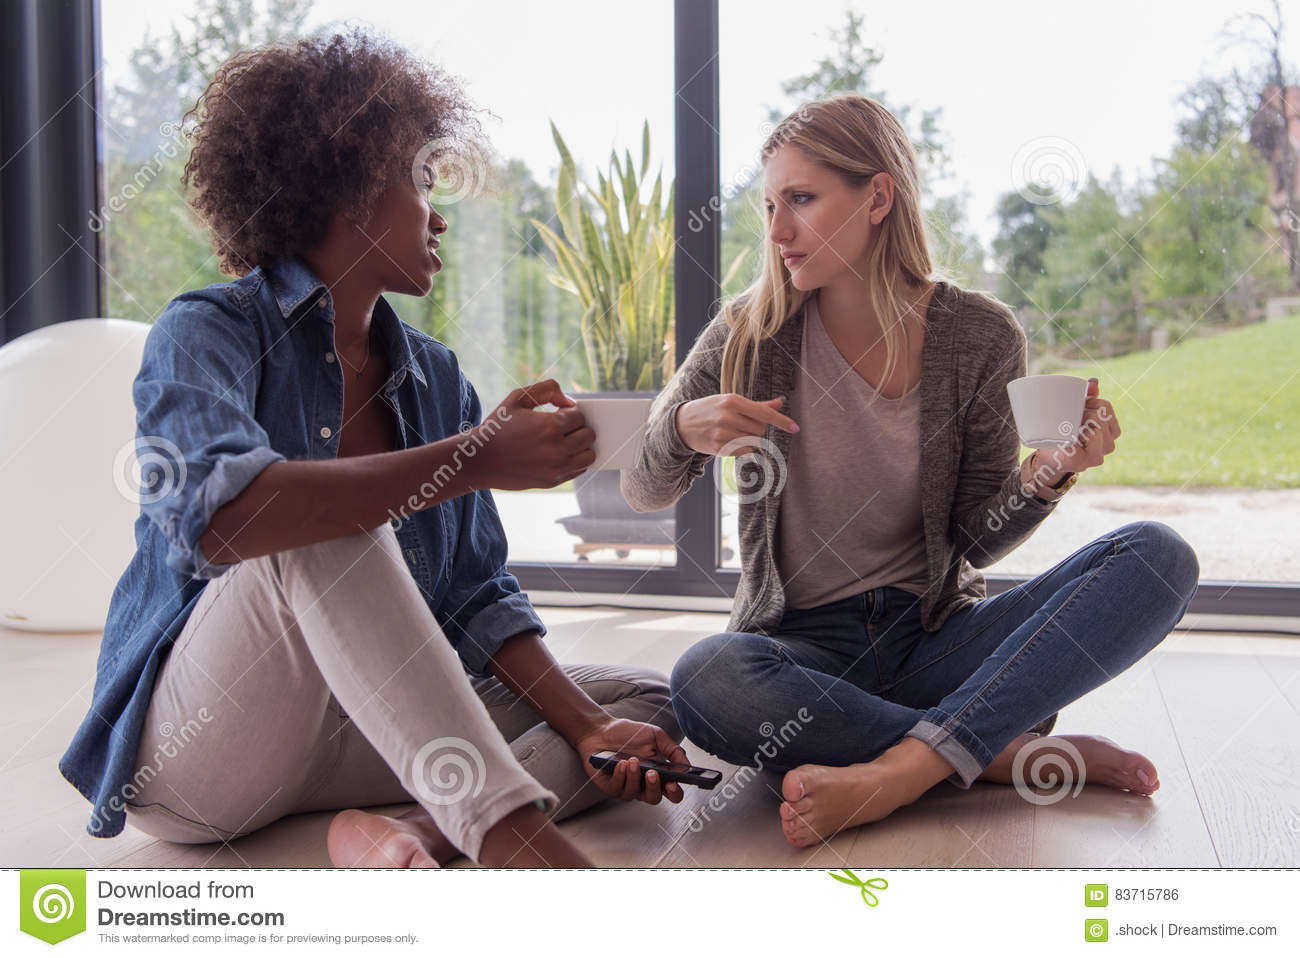 Multiethnic Women Sit On The Floor And Drinking Coffee Stock Photo